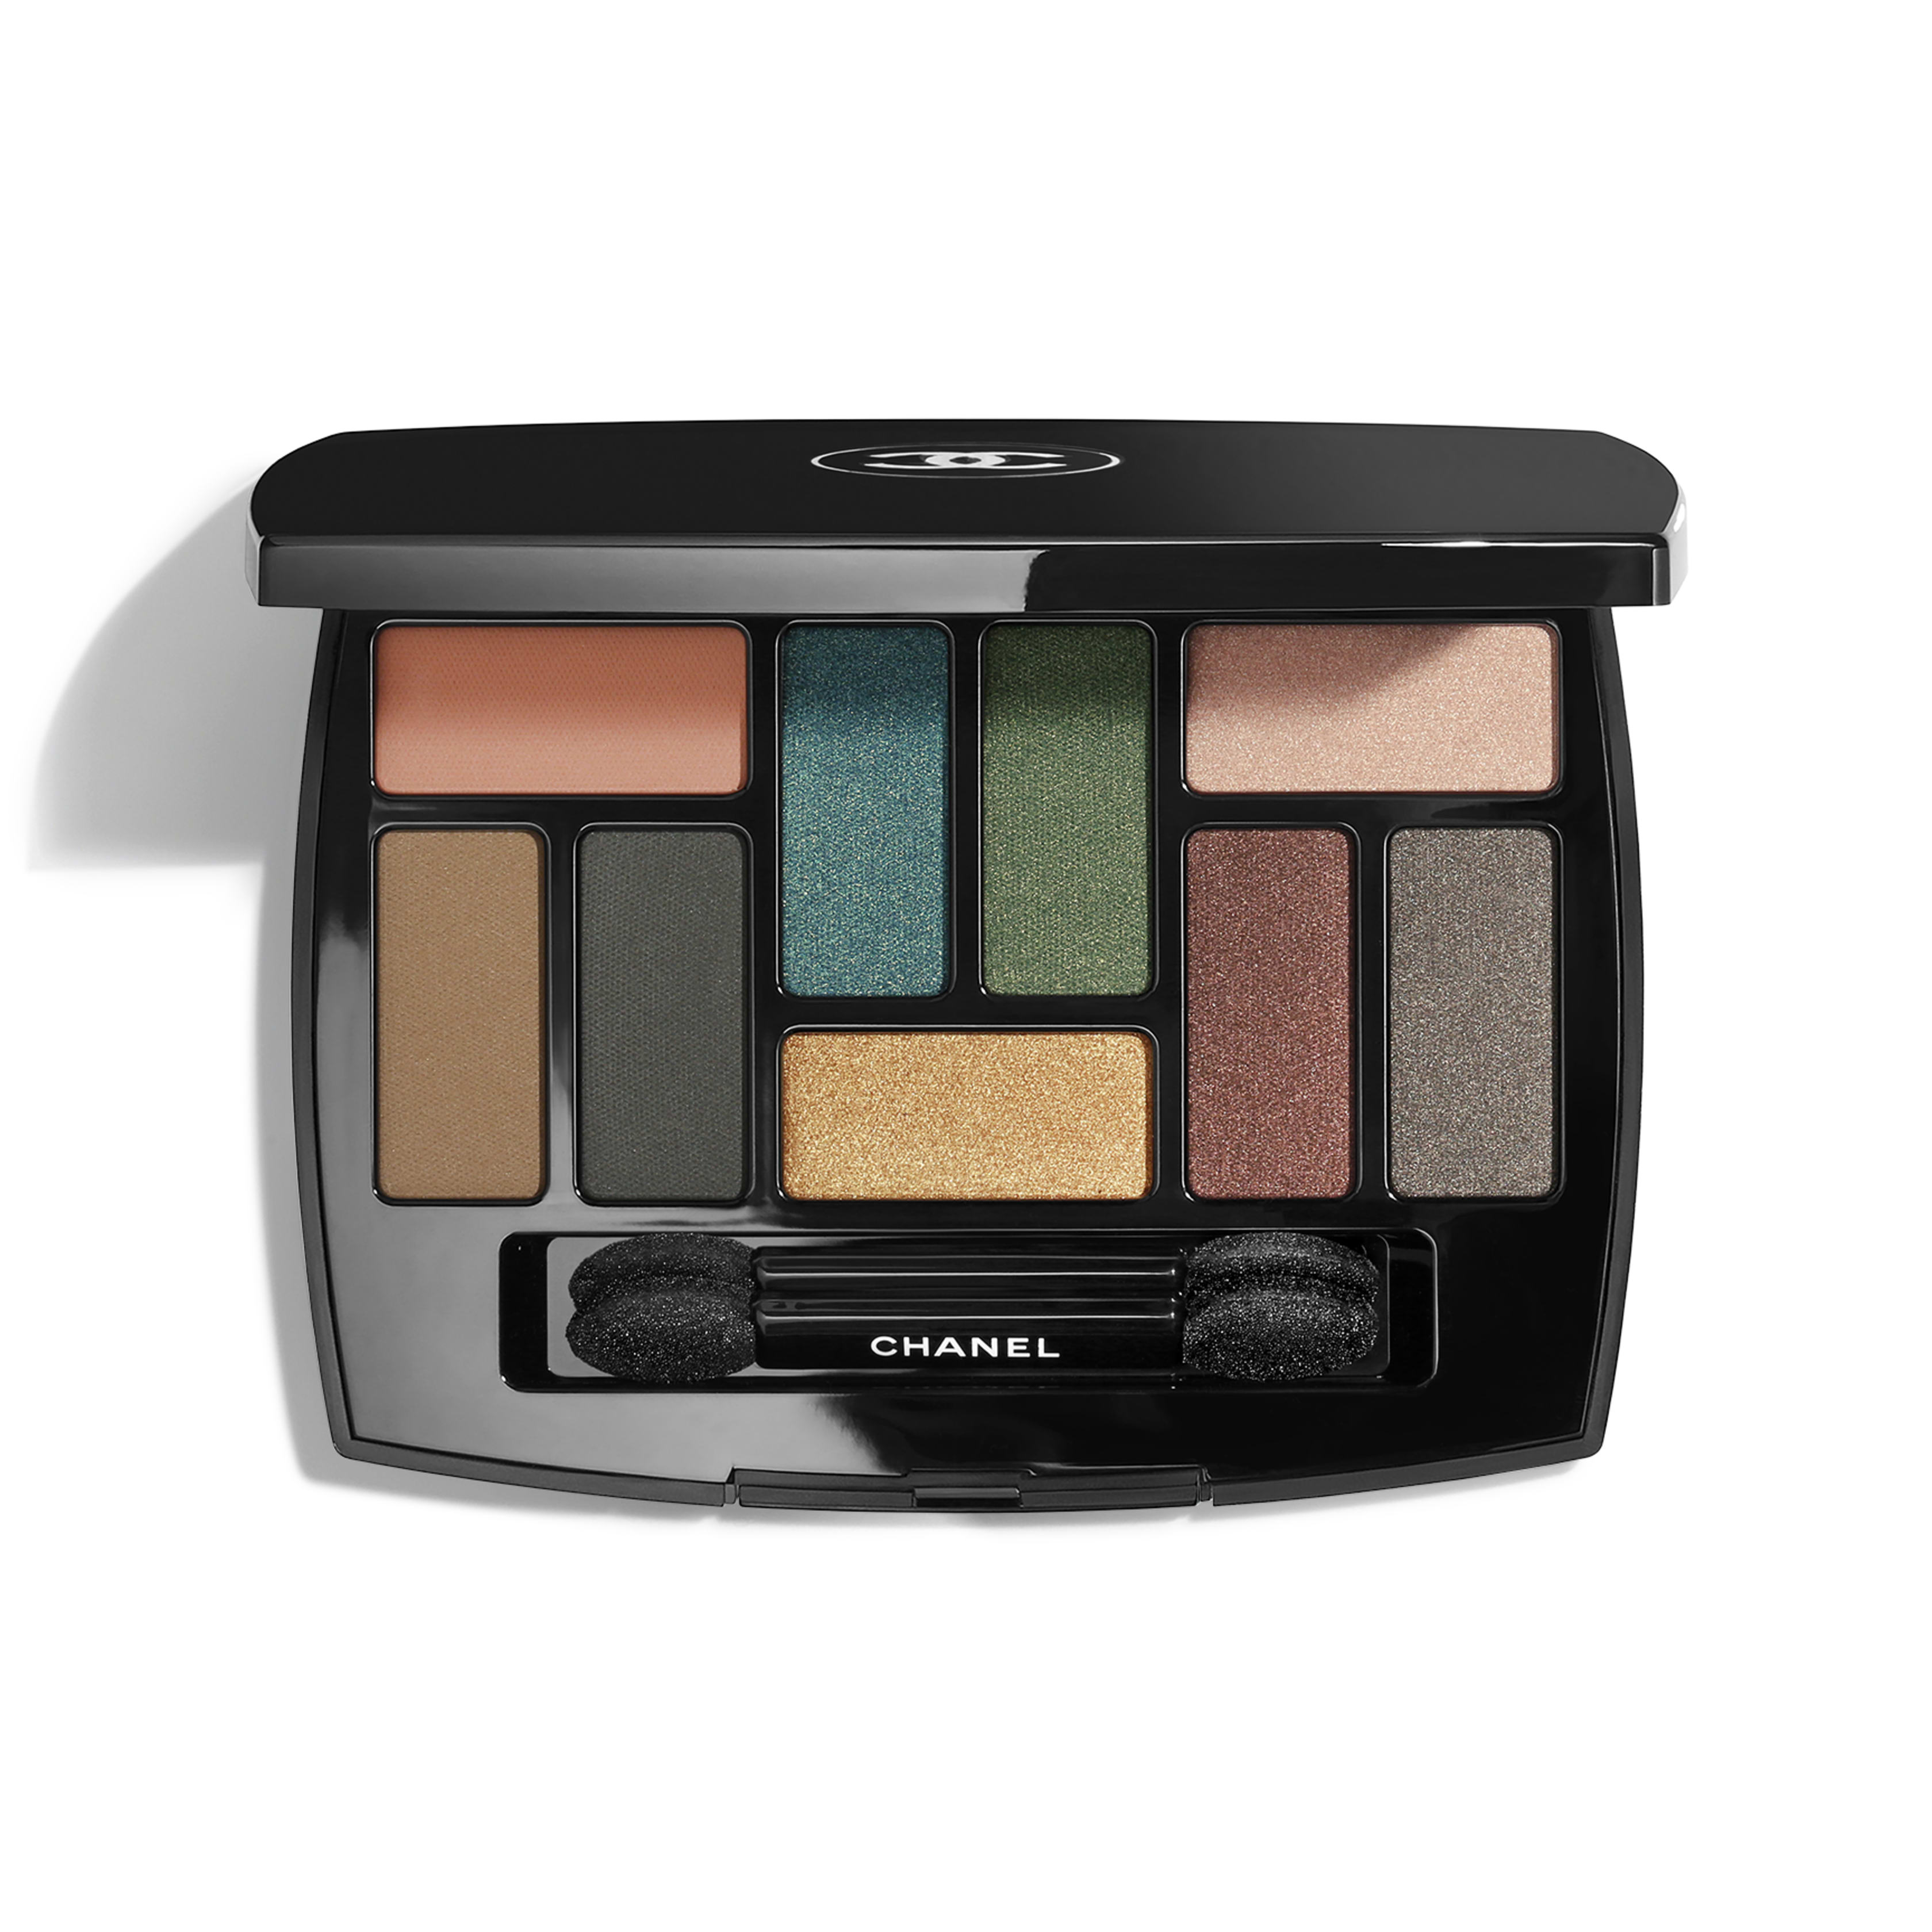 CHANEL Les 9 Ombres Multi-Effects Eyeshadow Palette